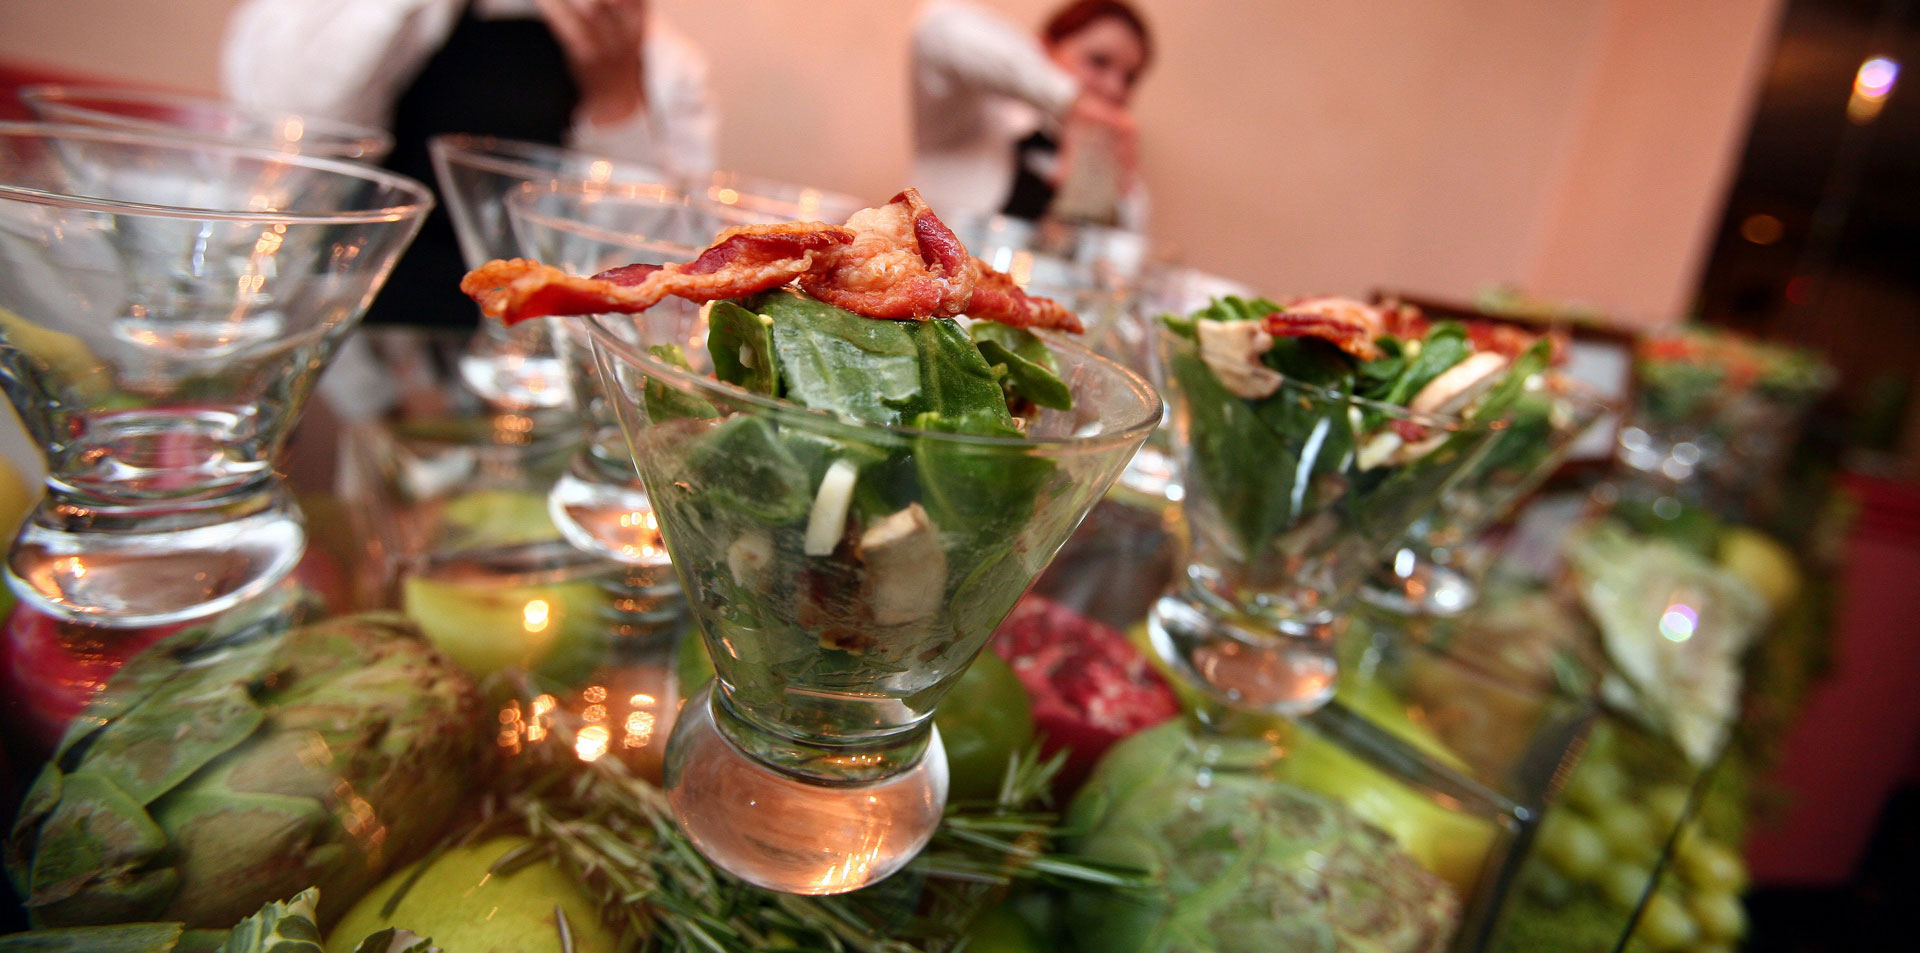 Polonia Catering